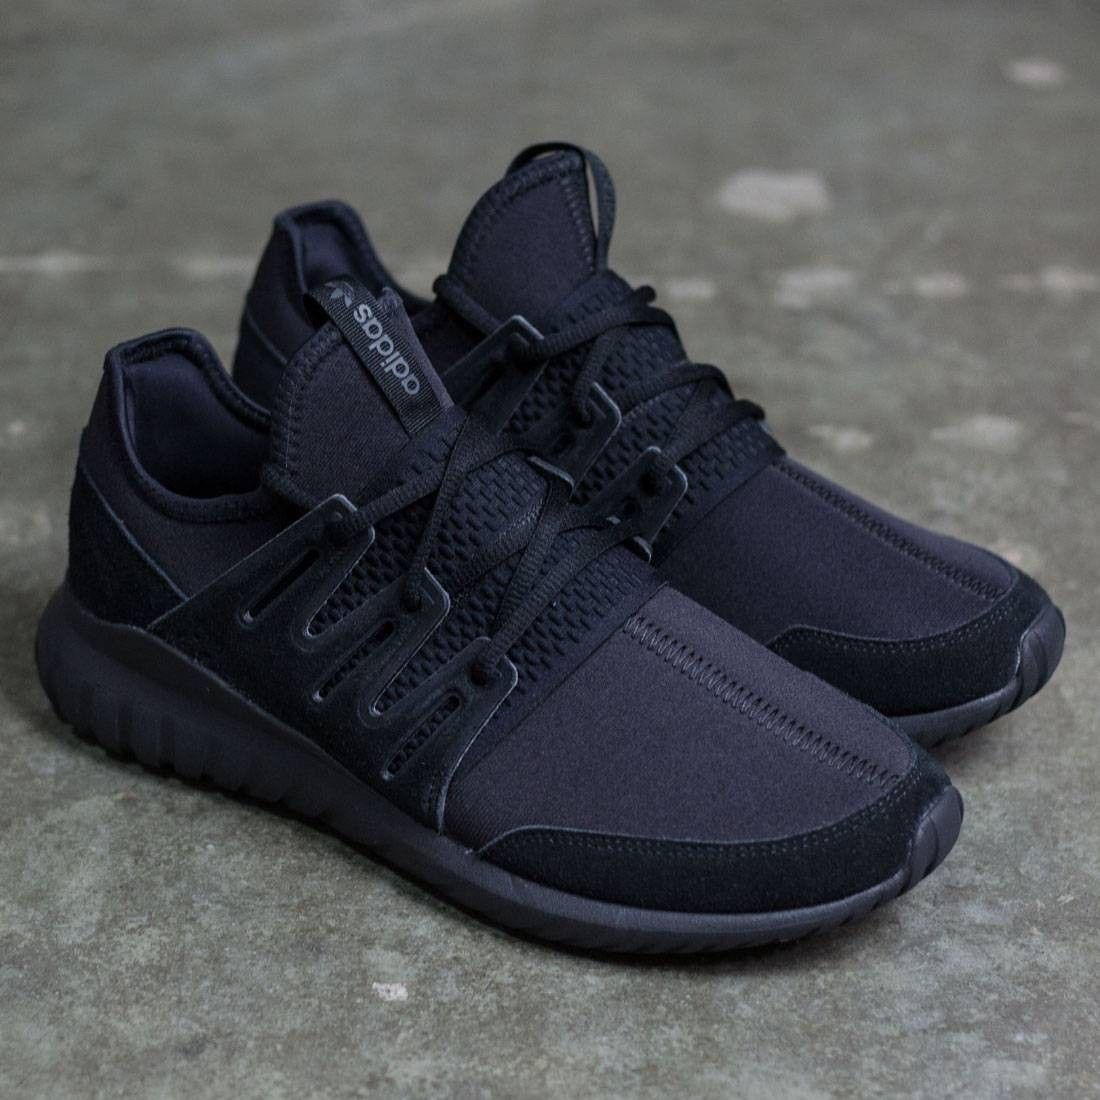 Cheap Adidas Tubular Mens Shoes Sale, Buy Tubular Boost for Men Online